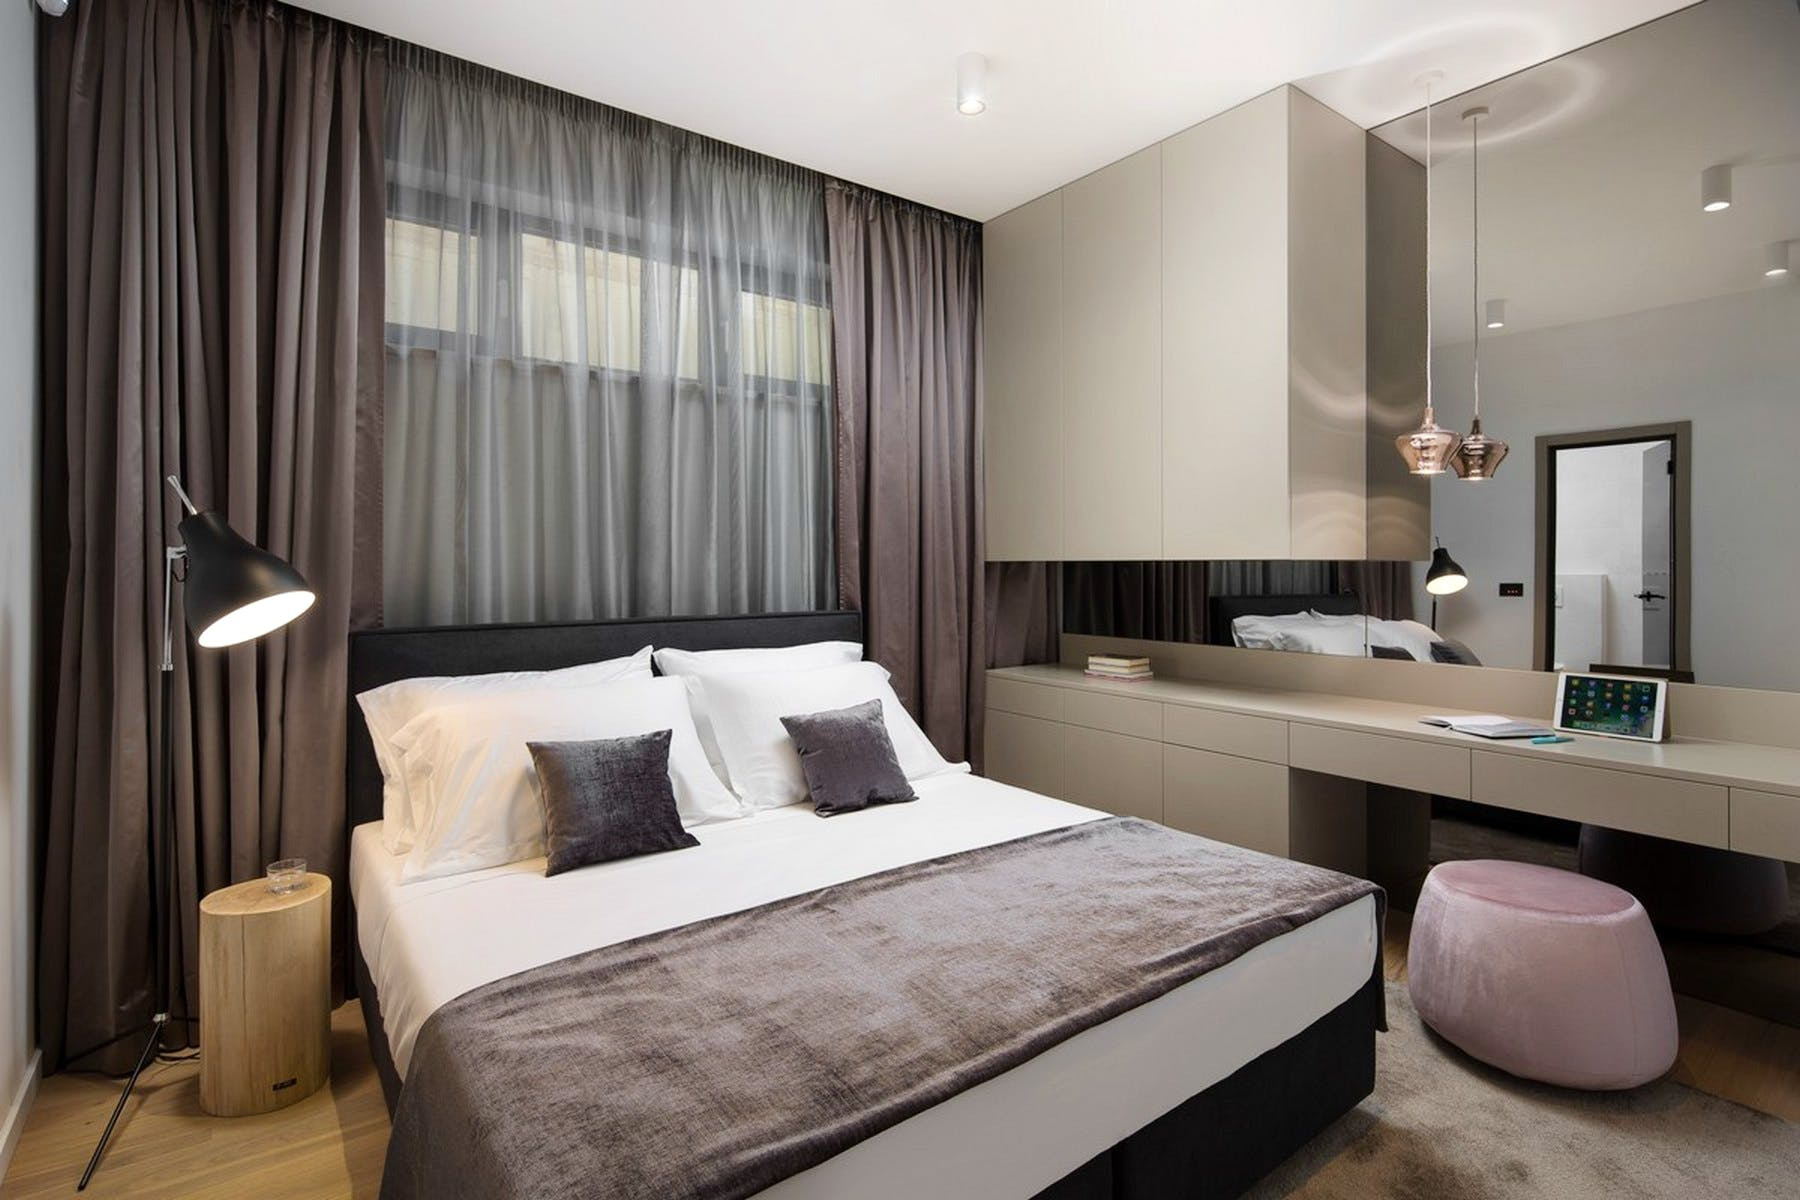 Double bedroom with a large mirror